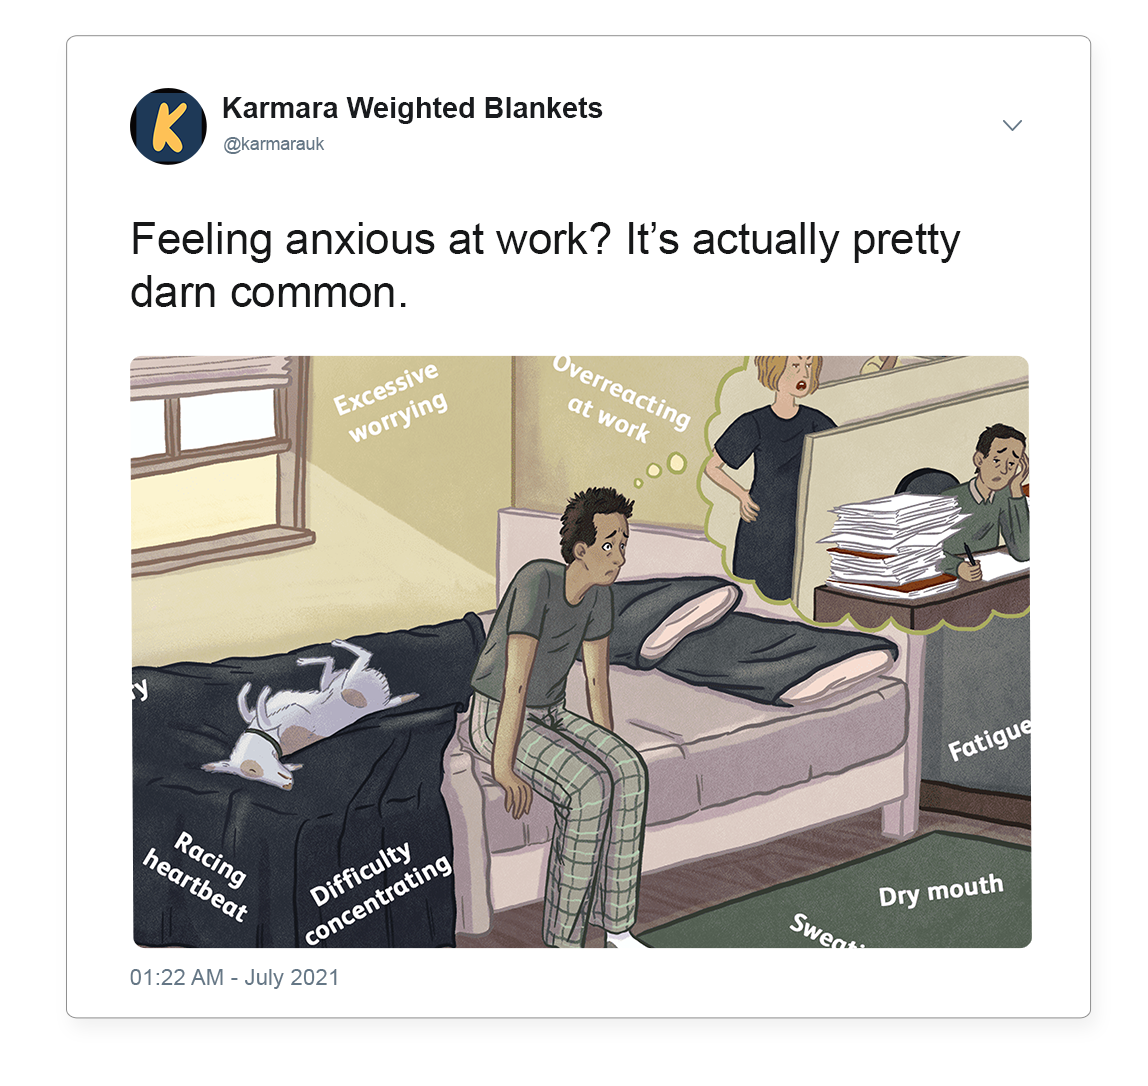 Anxiety at work